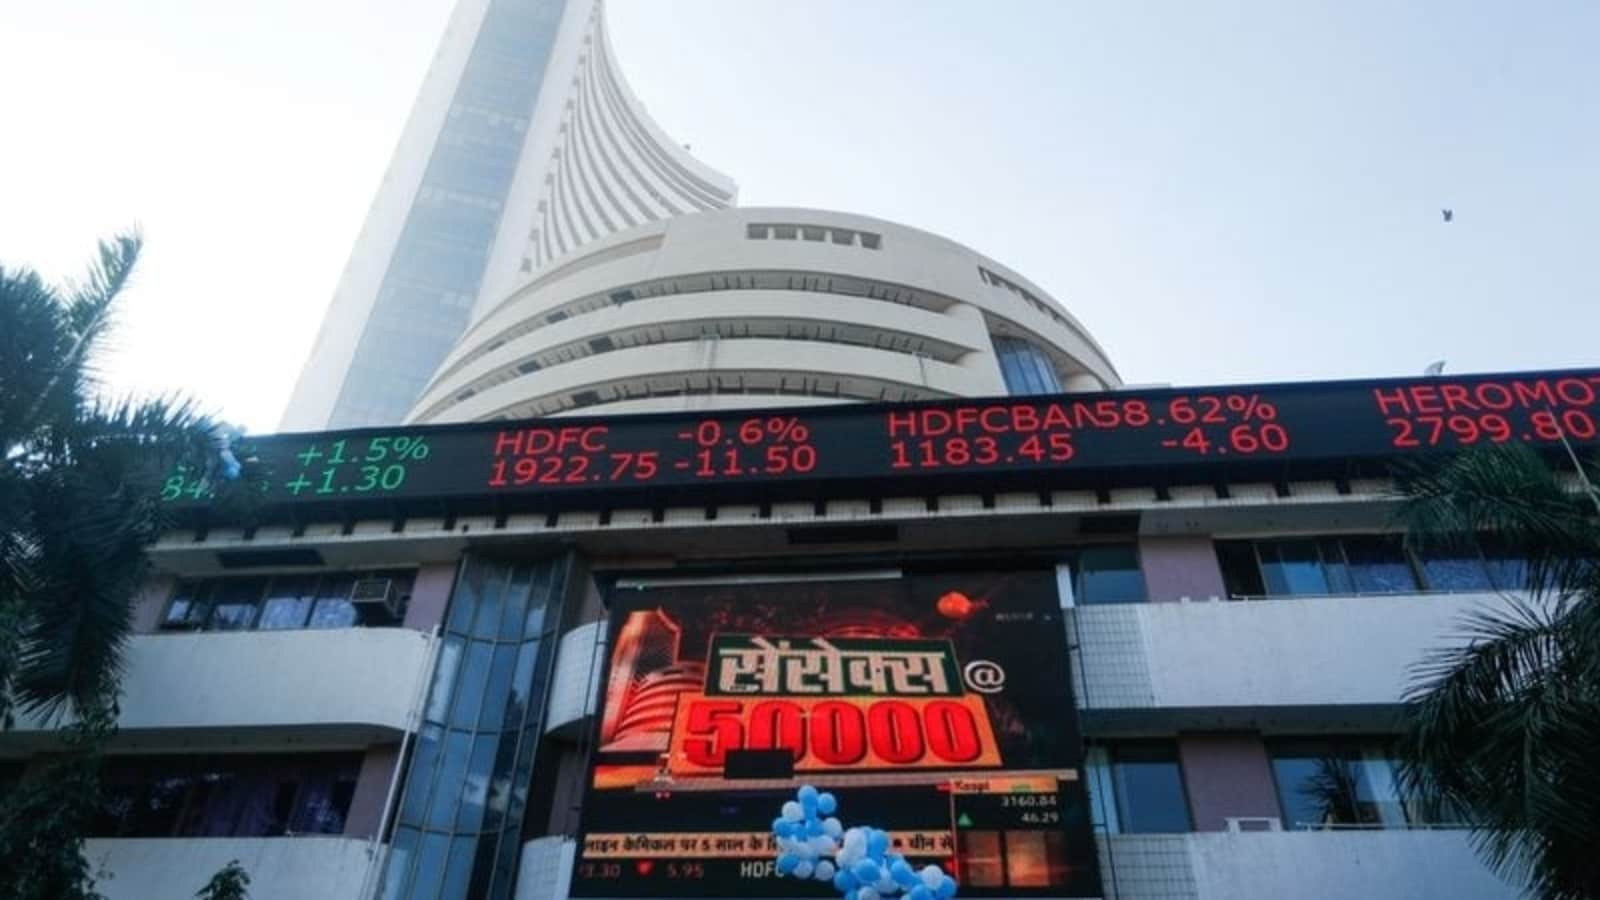 Markets open up with gains: Sensex up 240 points, Nifty above 15,700 thumbnail